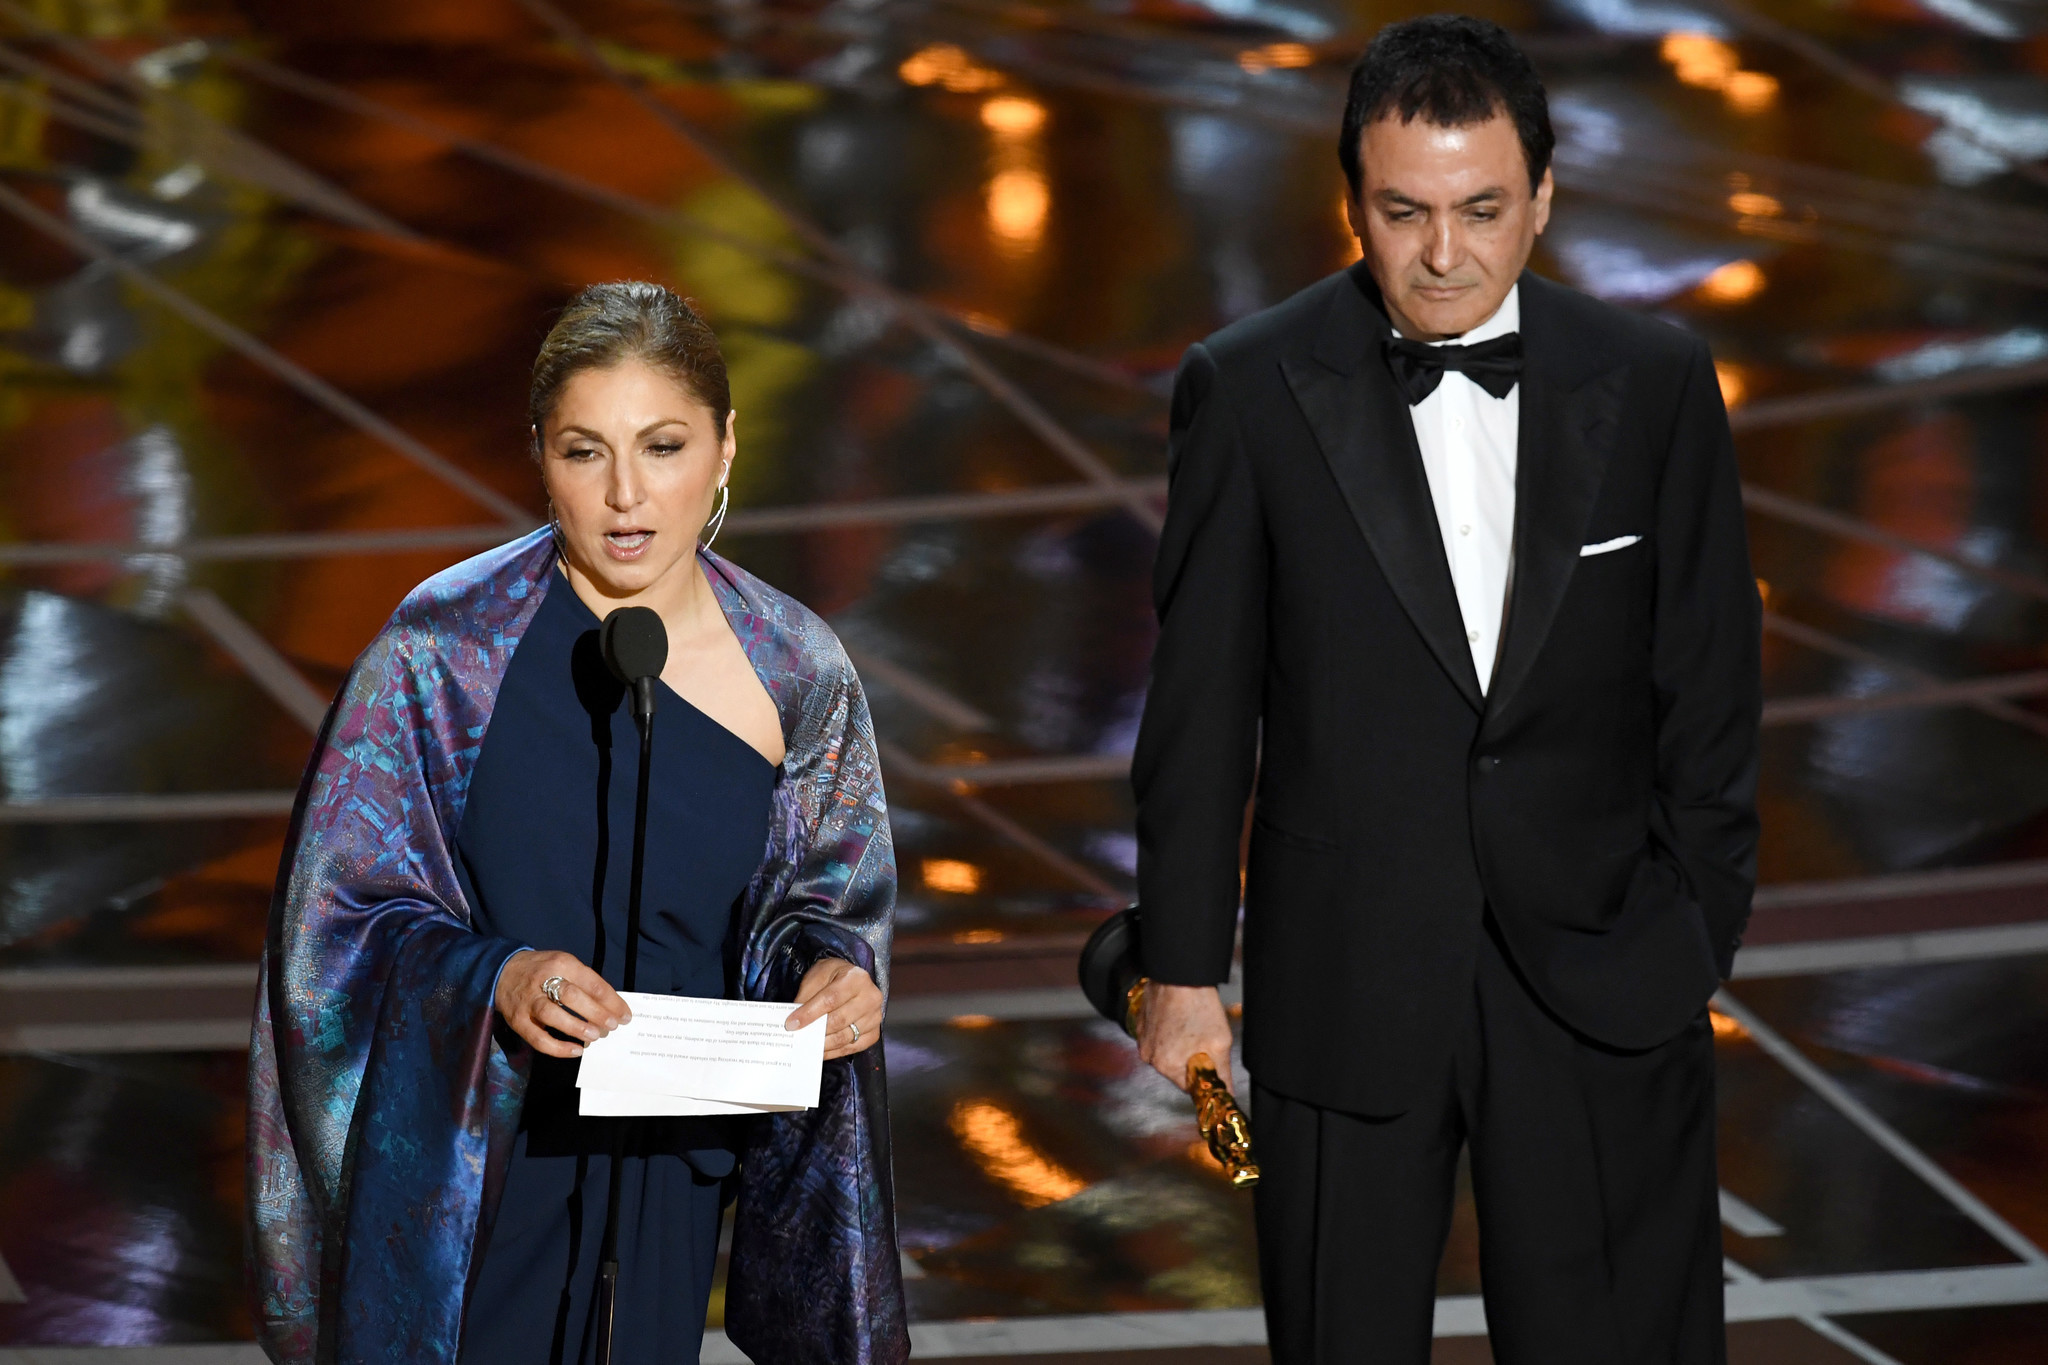 Full statement from foreign-language film winner Asghar Farhadi, who refused to go to the Oscars in protest